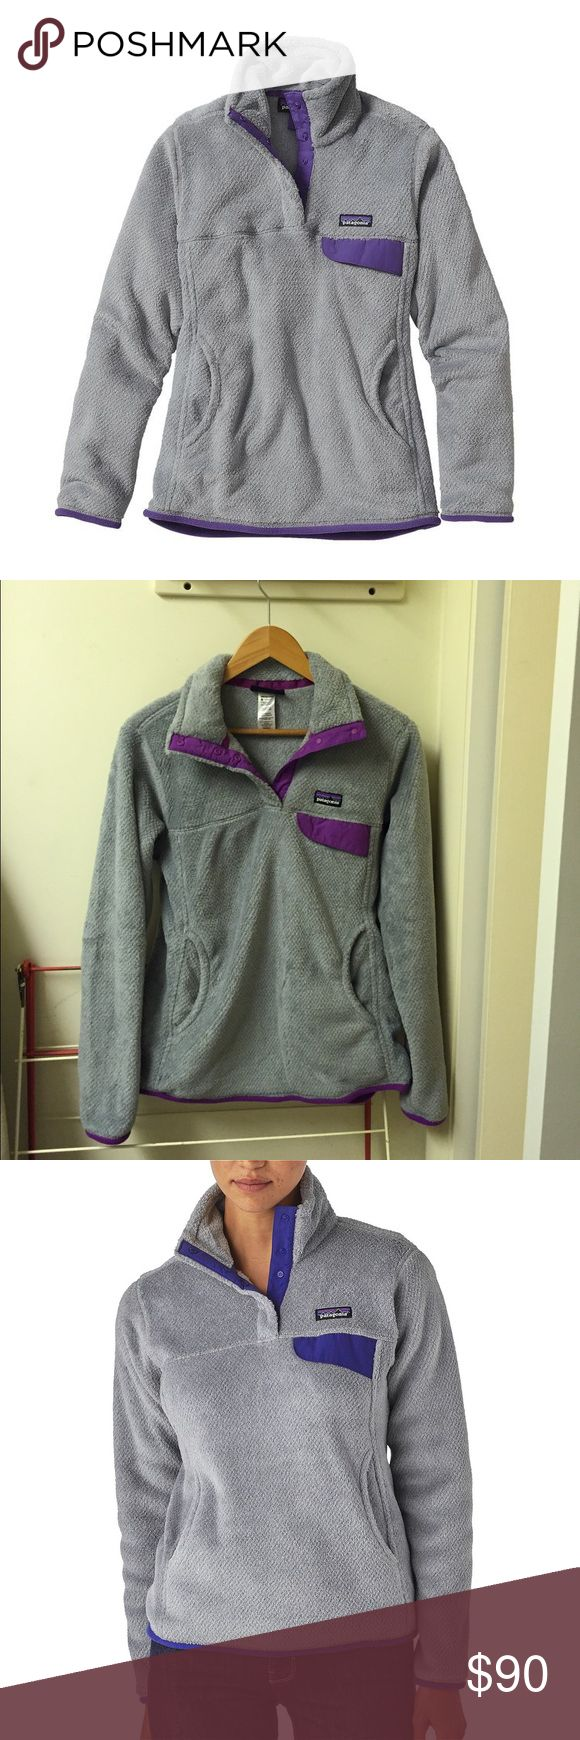 Patagonia Fleece Pullover Patagonia Women's Re-Tool Snap-T Fleece Pullover; tailored grey-purple; only worn once Patagonia Jackets & Coats